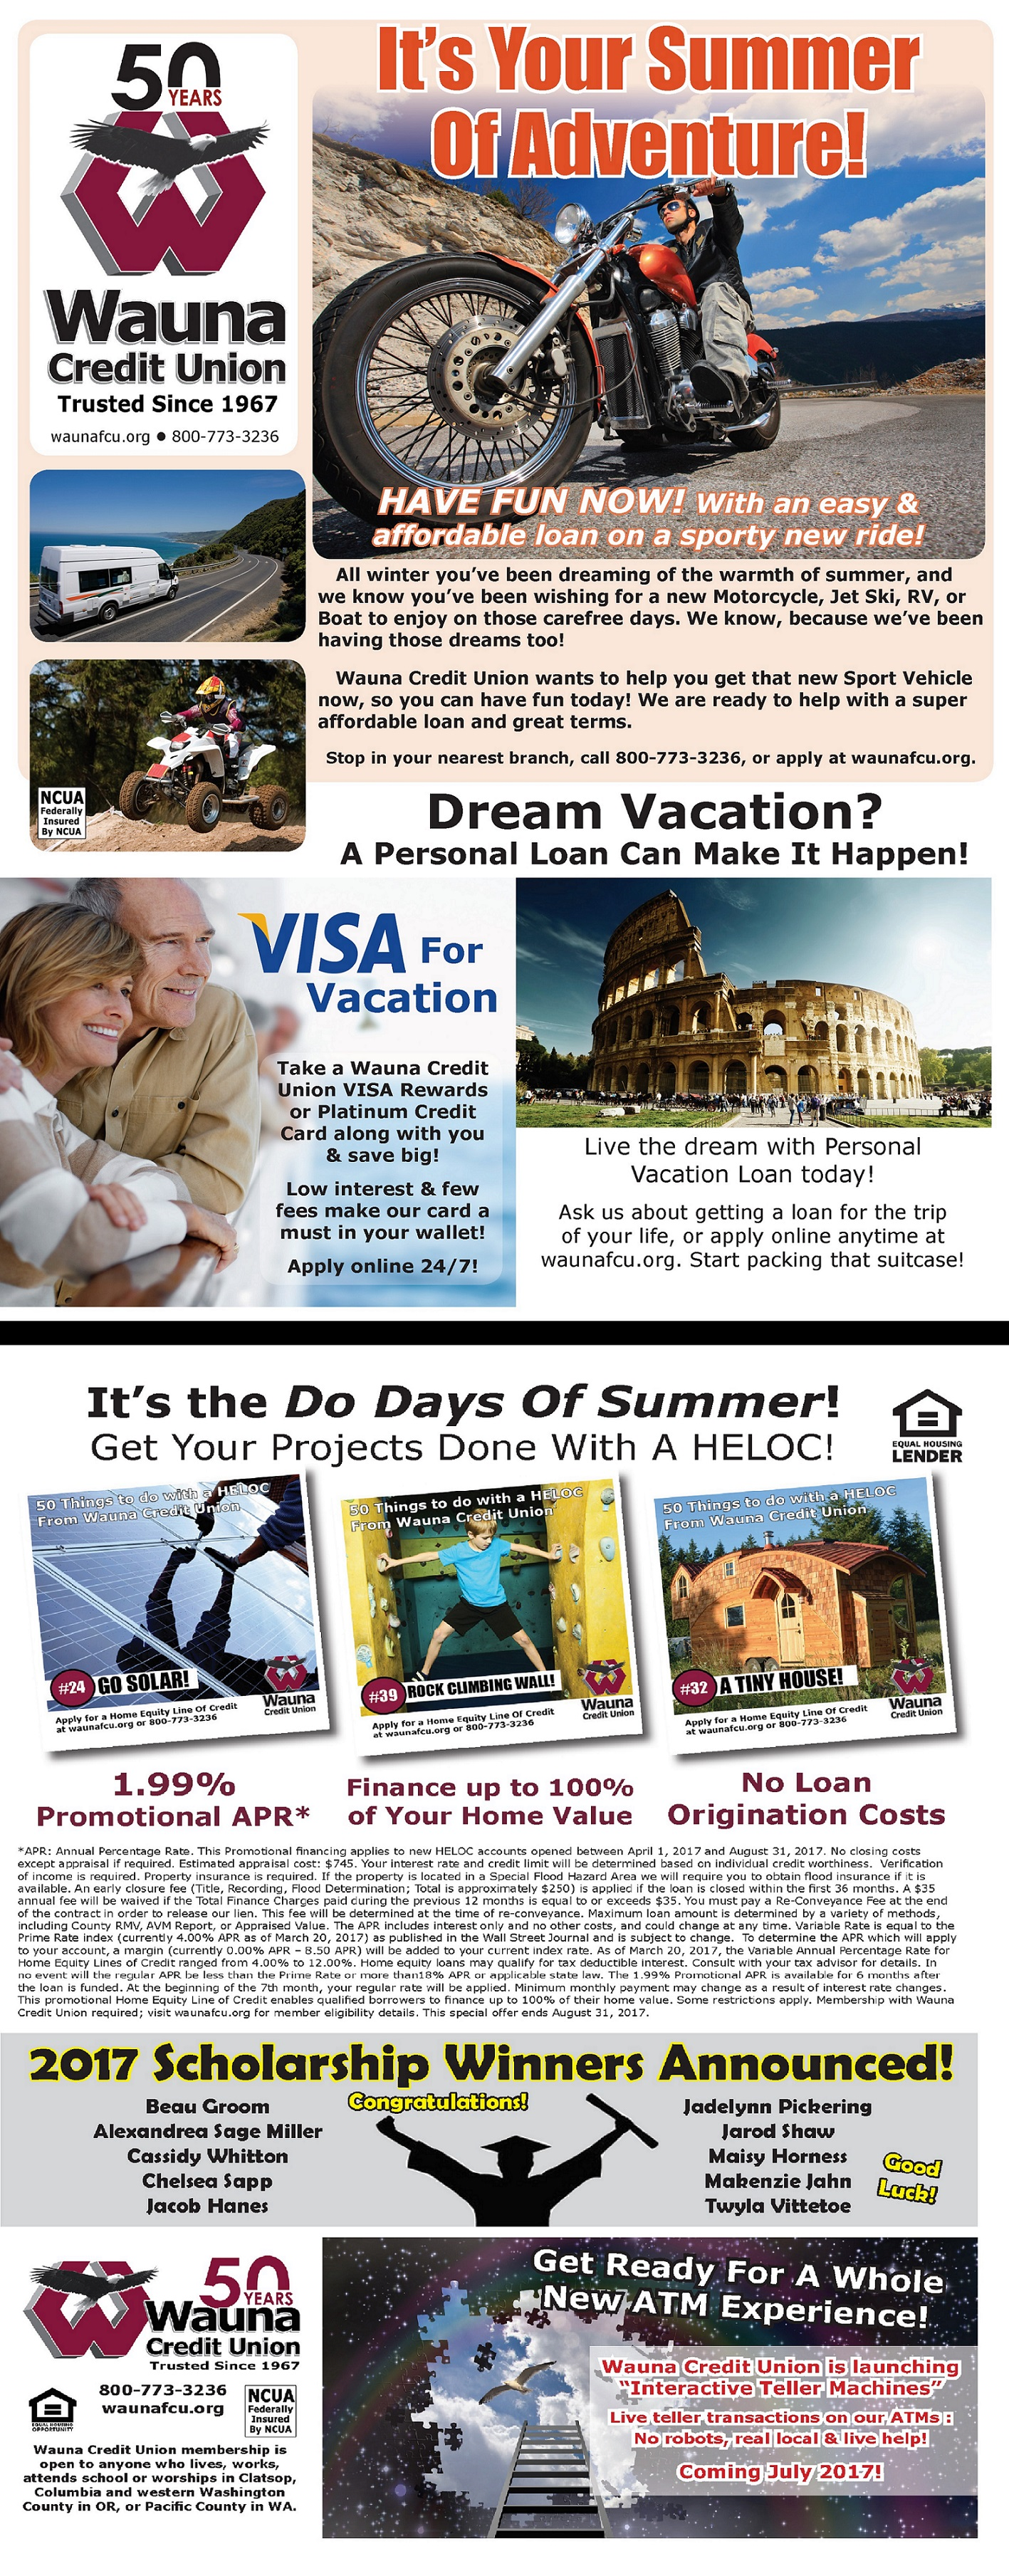 Wauna Credit Union July Checking Statement-Summer of Adventure, Vacation Financing, Do Days of Summer